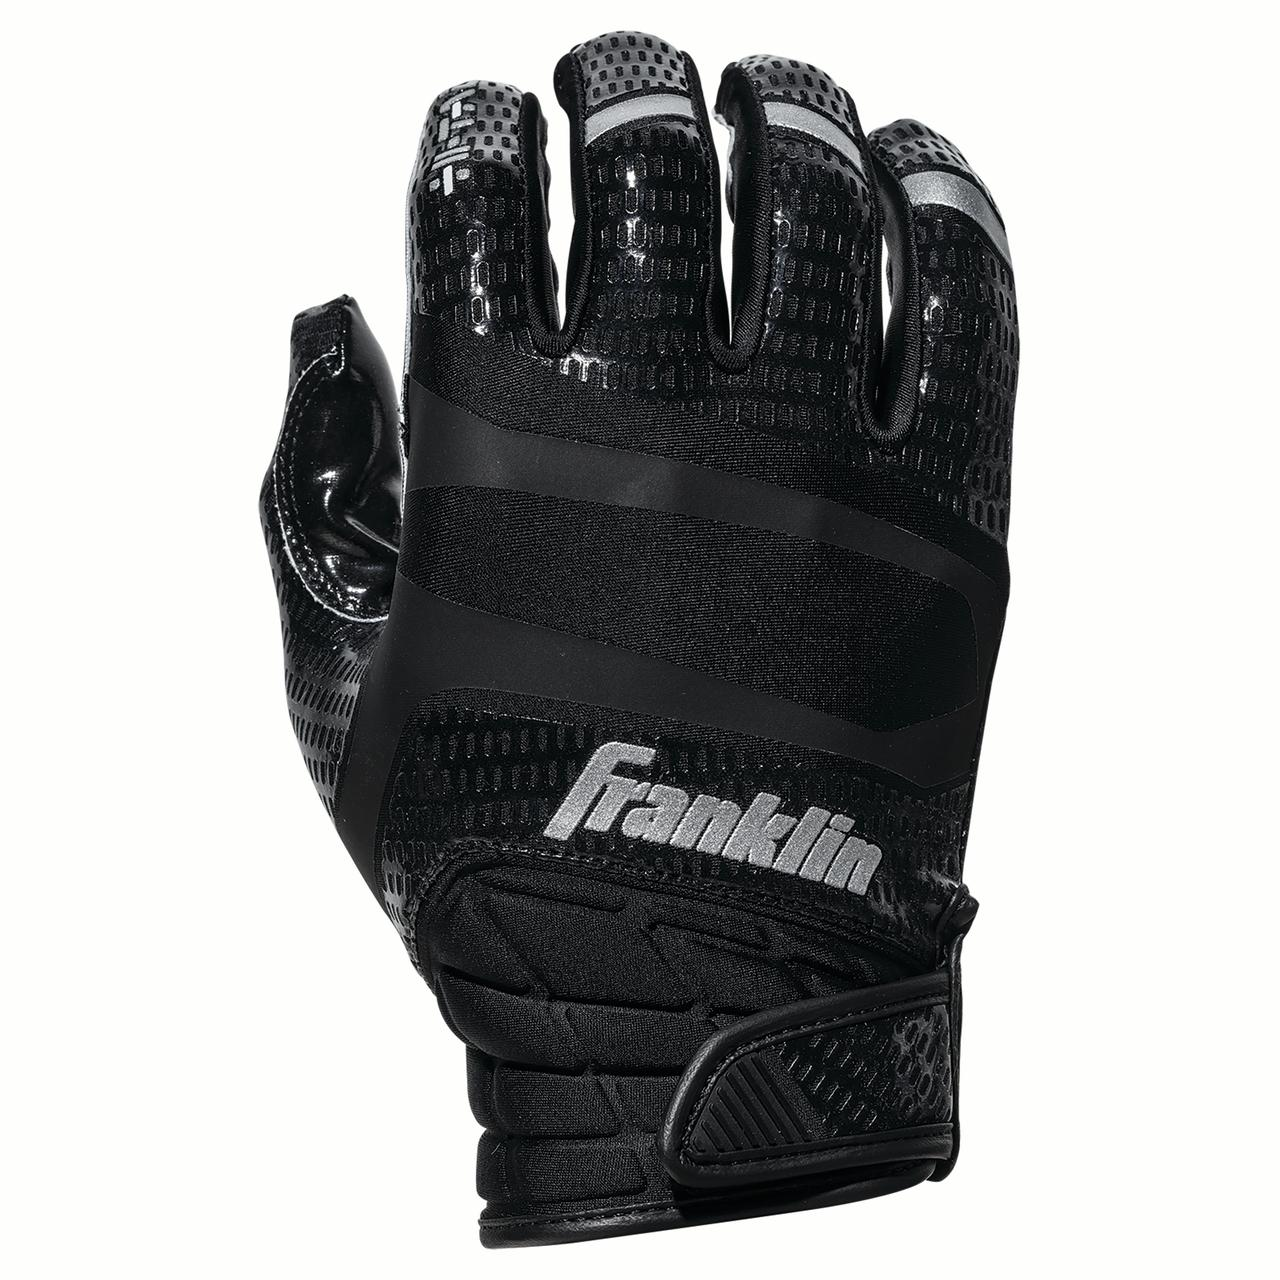 Franklin Sports Hi-Tack Premium Football Receiver Gloves - Black - Youth Medium